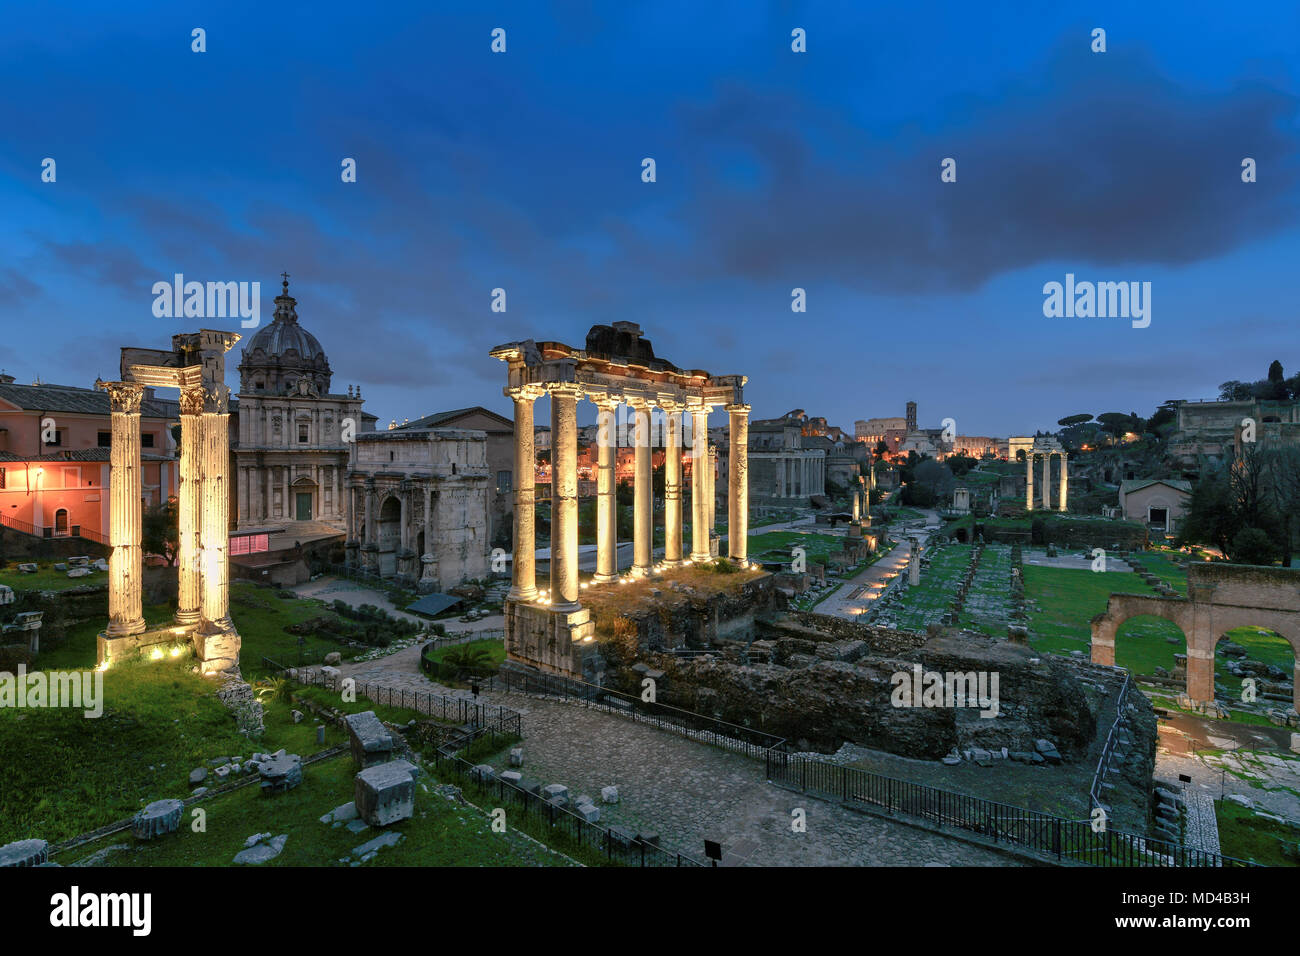 Roman Forum at night. View of the Roman forum and the Colosseum, Italy. - Stock Image